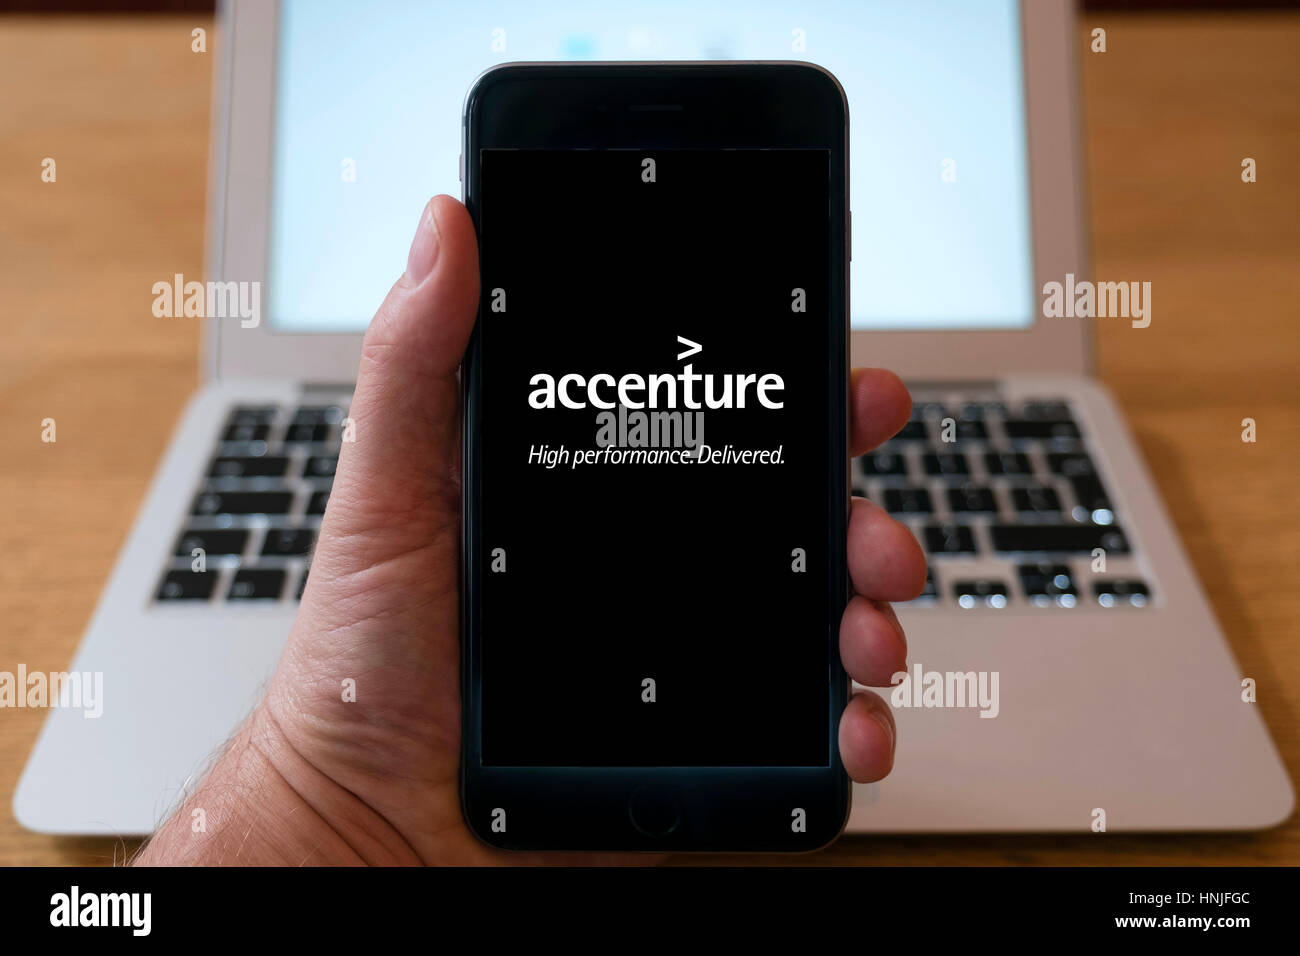 Accenture management consultant website on smart phone screen. - Stock Image